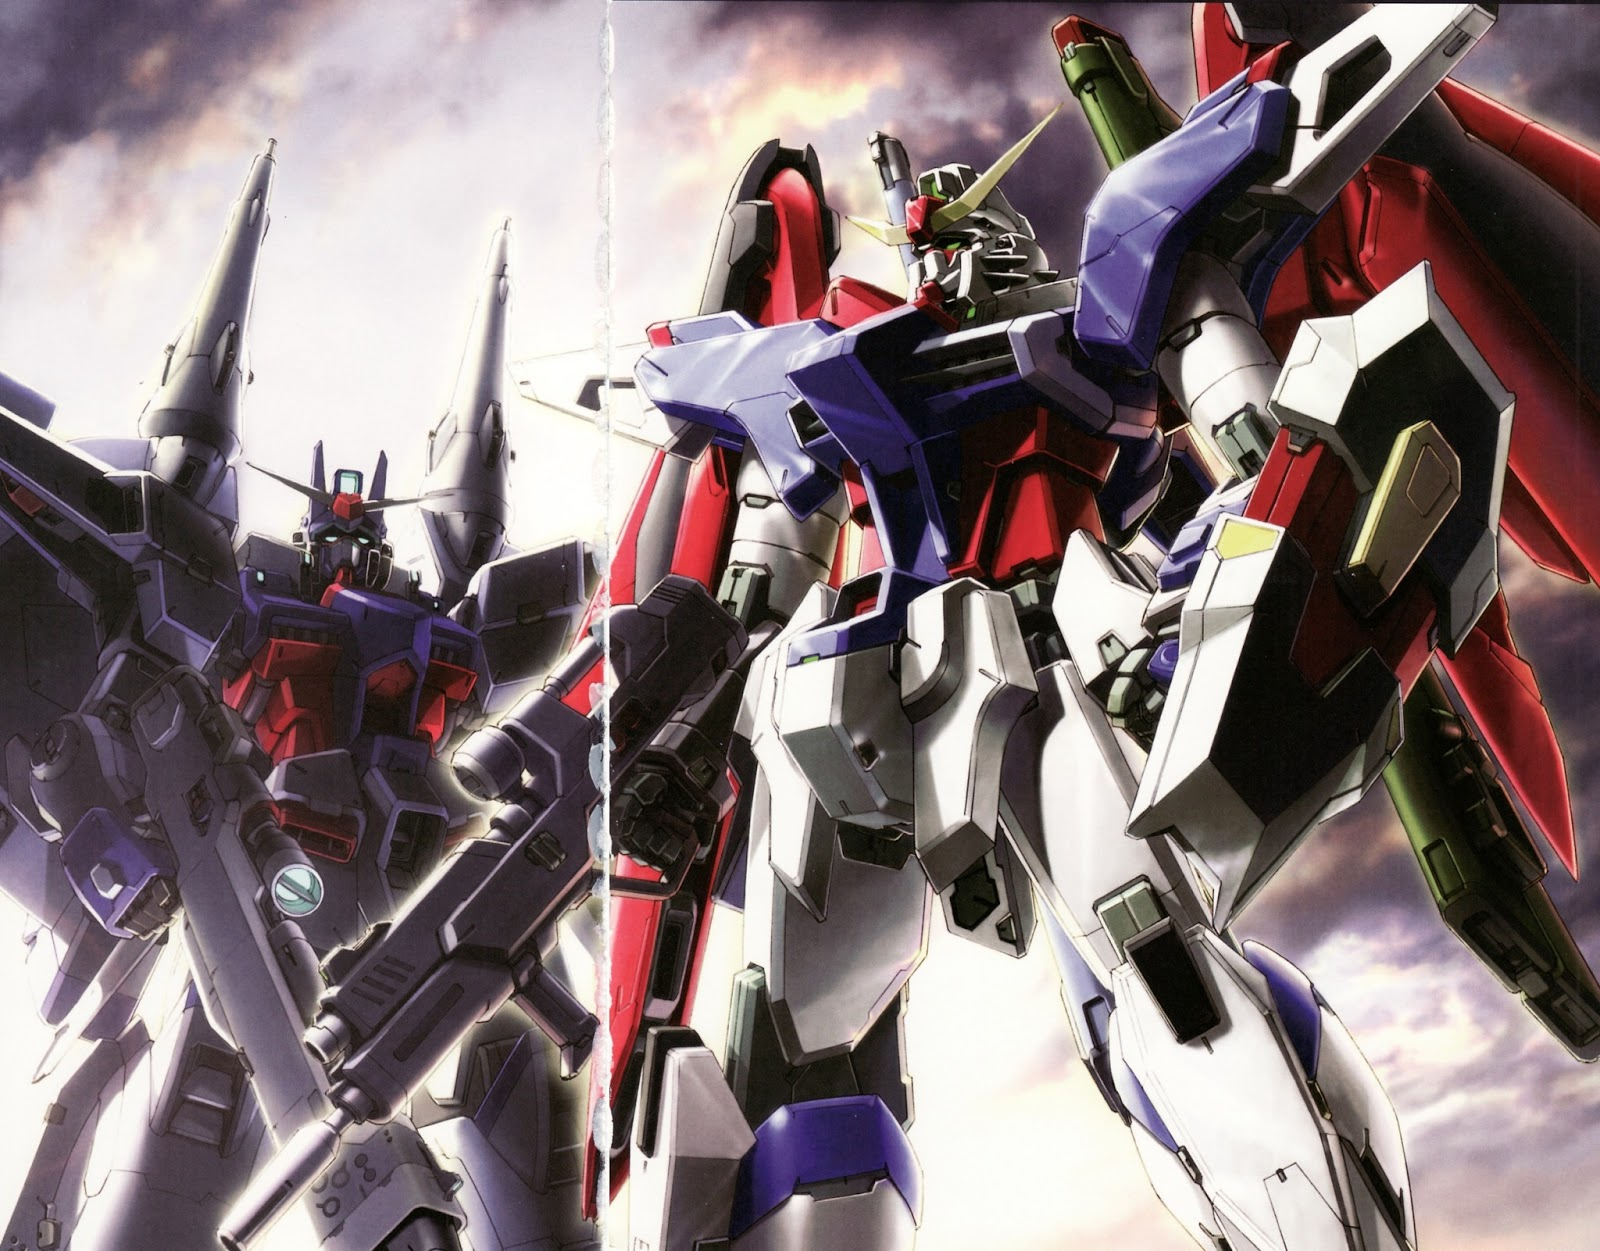 Gundam SEED Destiny Wallpapers   Gundam Kits Collection 1600x1251